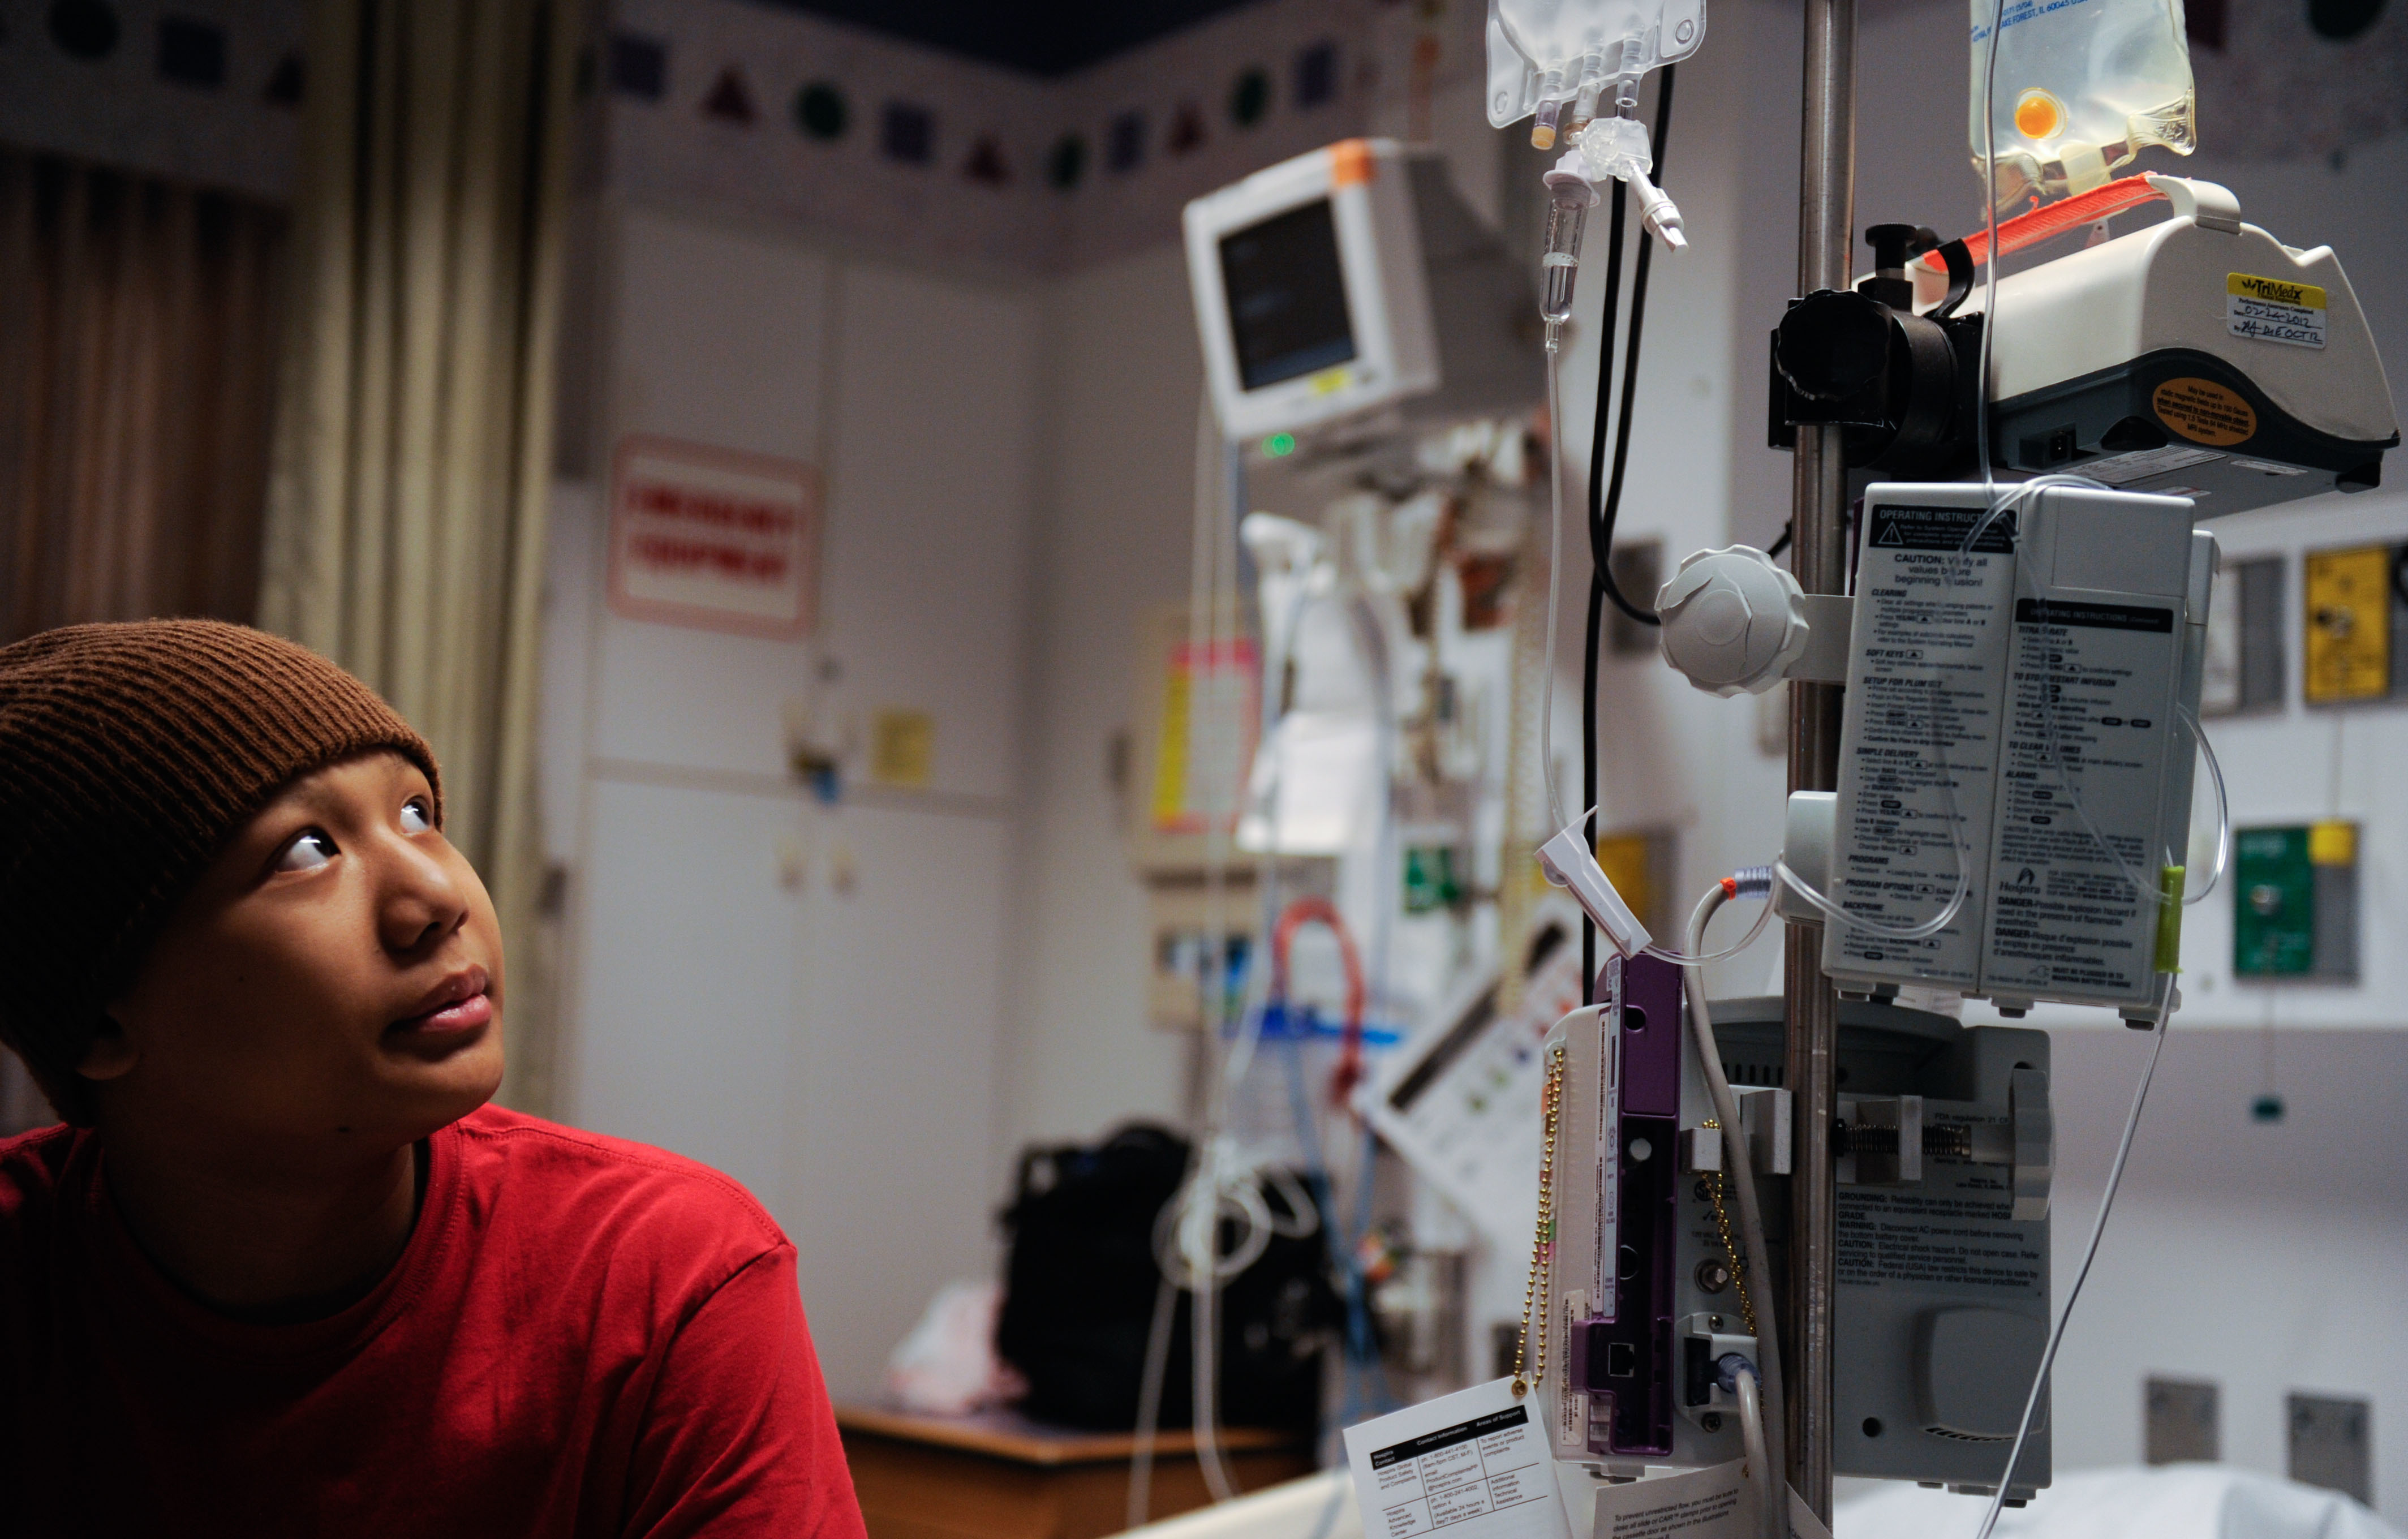 New hope for cancer patients: Studies identity whether you will respond to chemotherapy or not